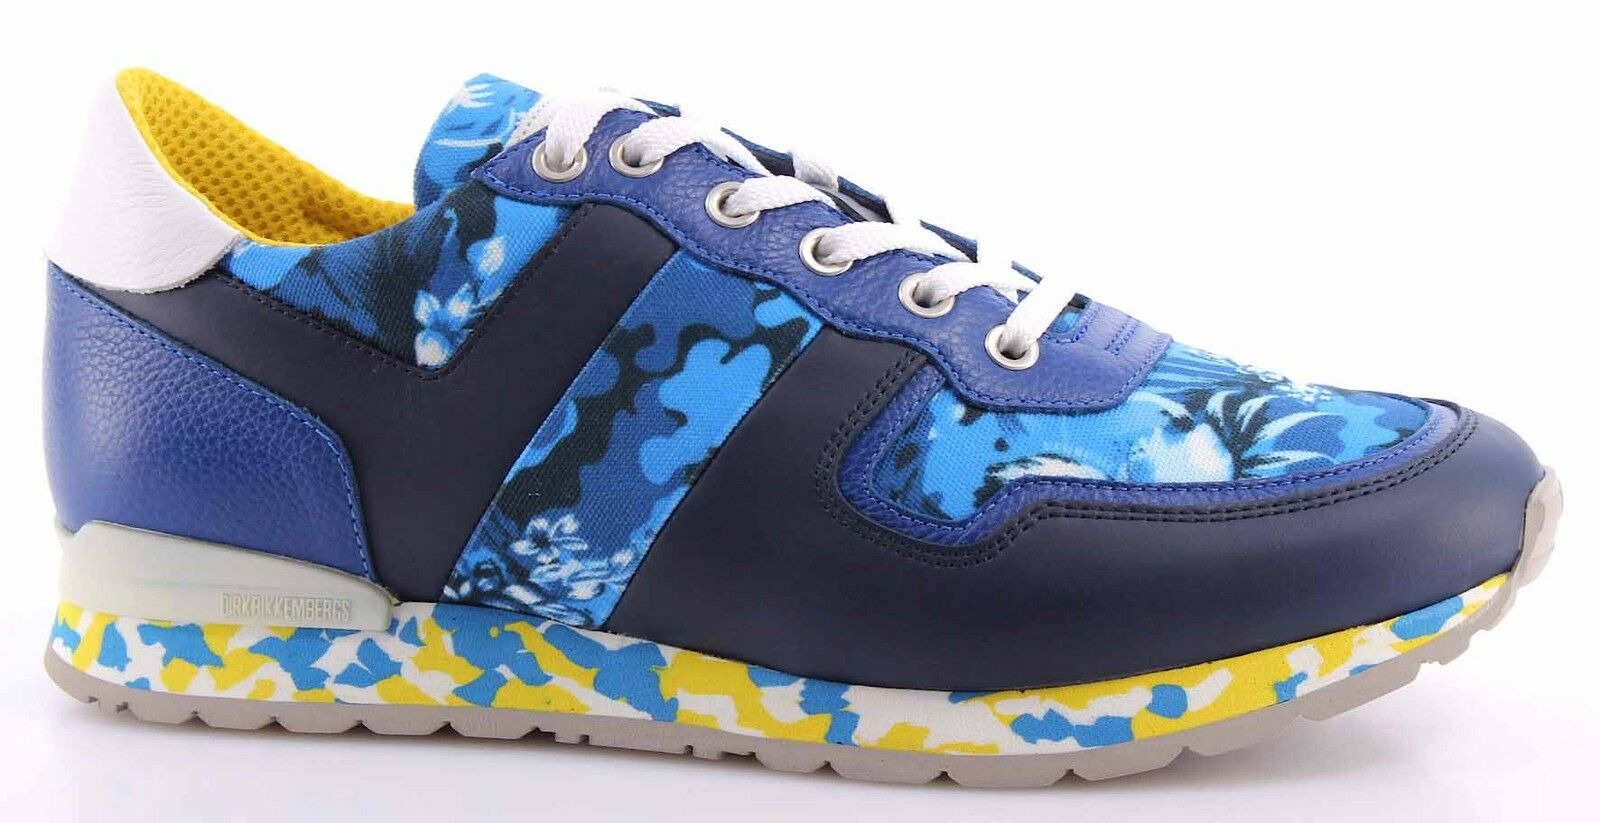 shoes men Sneakers BIKKEMBERGS BKE107905 Mant 338 Lshoes M Leat bluee Camouflage